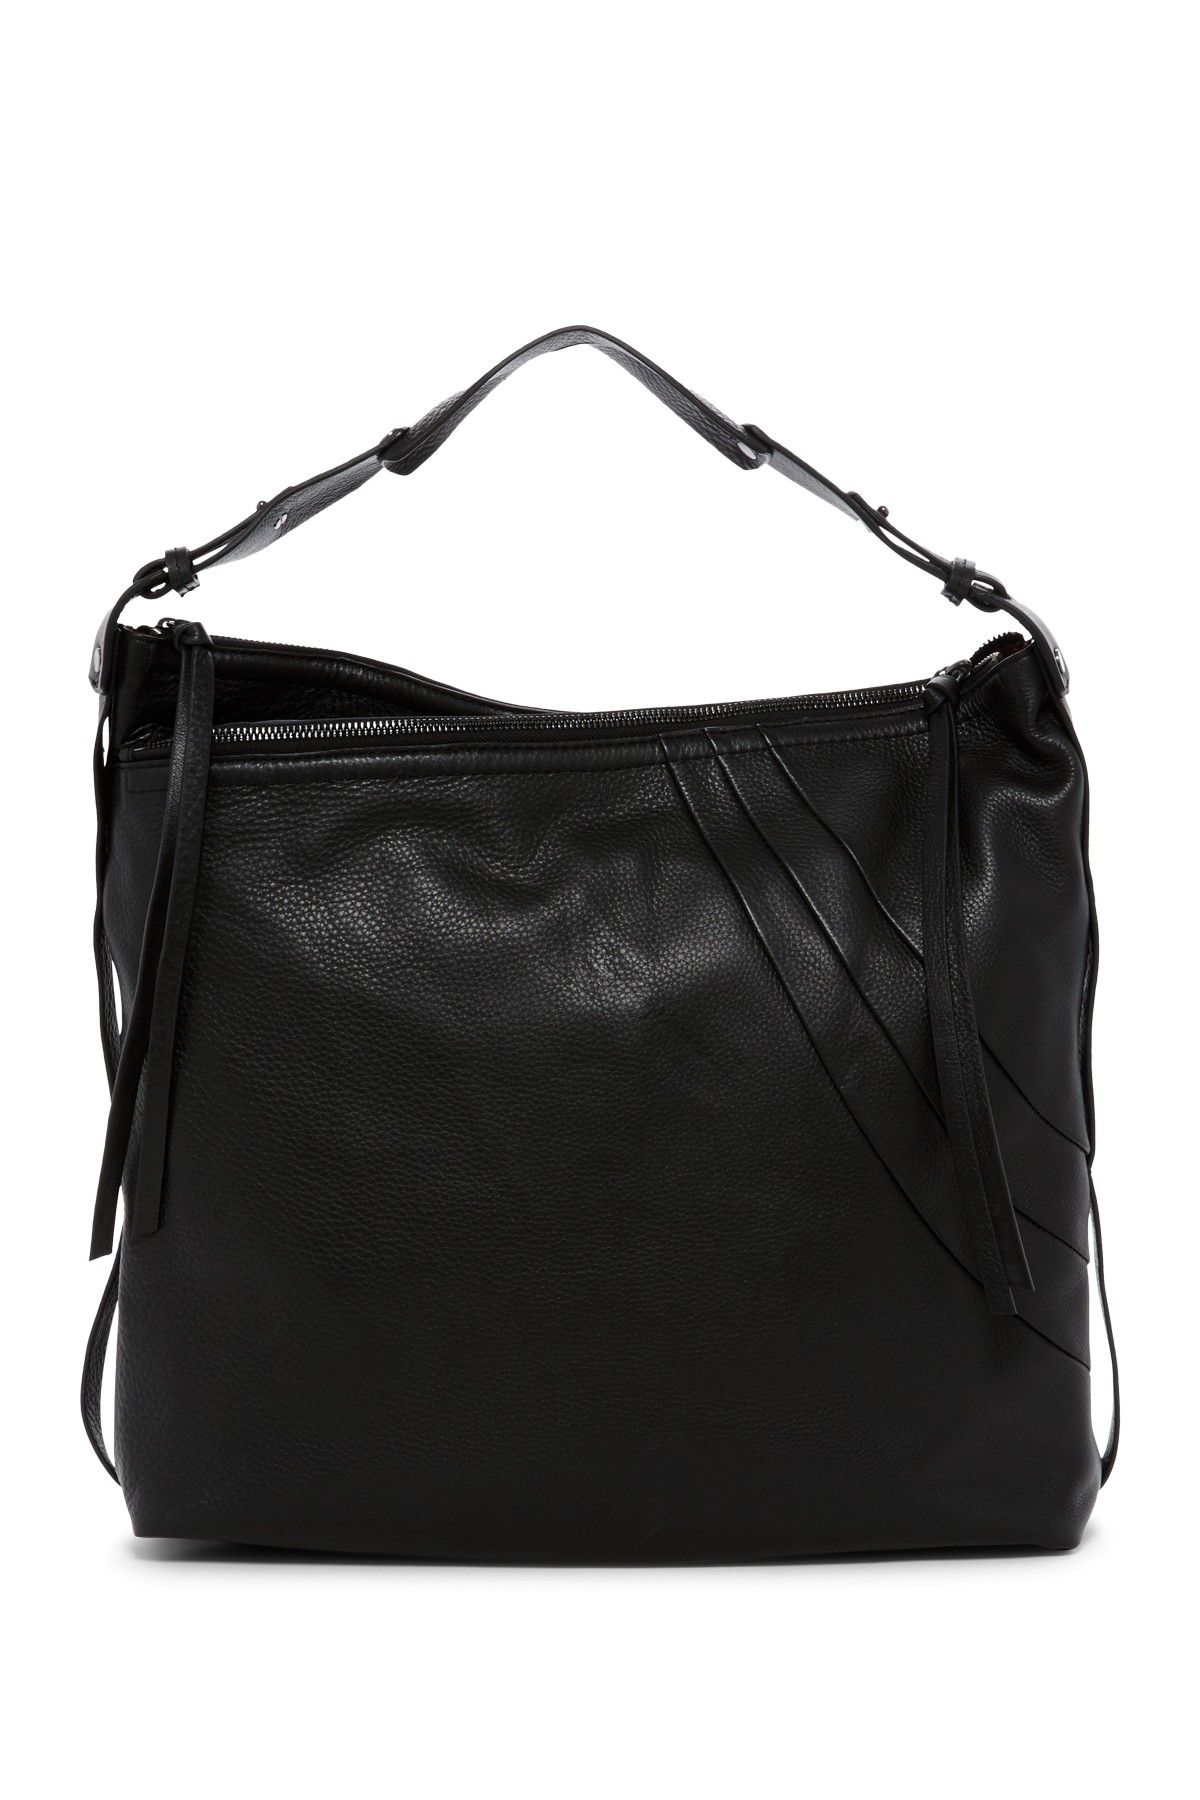 b08d1e57a17 Stratford Leather Hobo   Products   Pinterest   Leather, Handbags ...